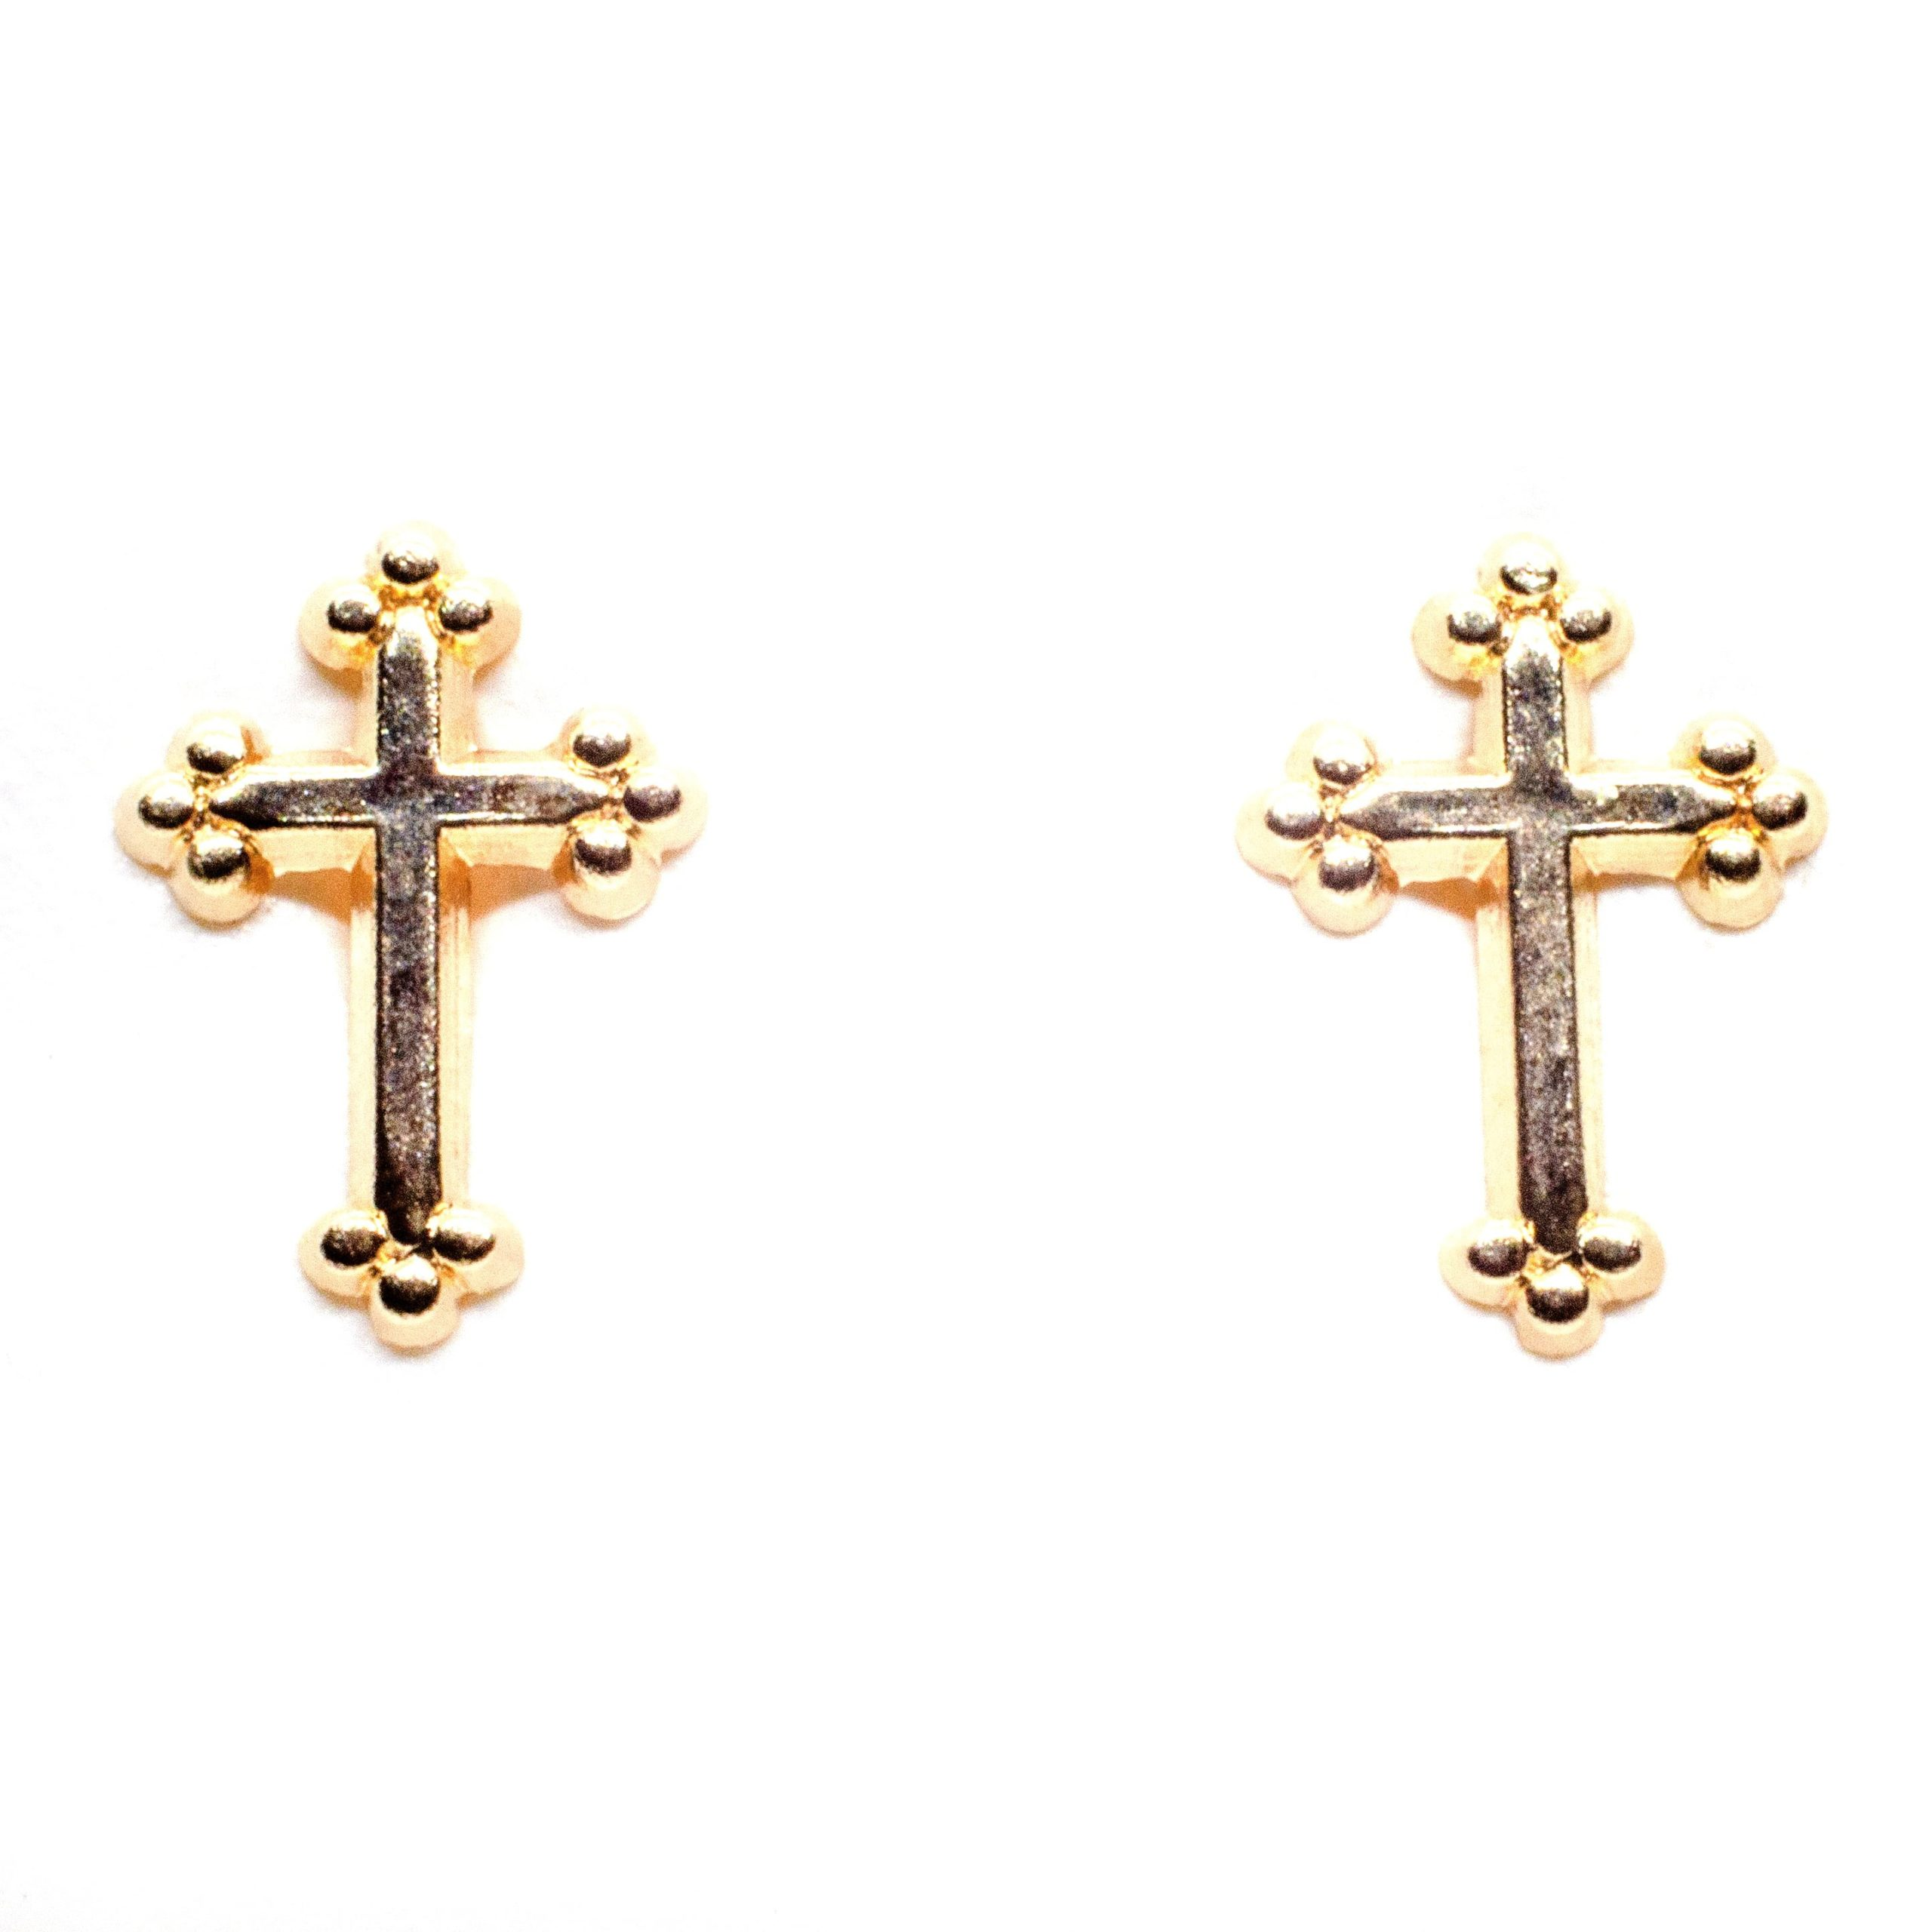 10mm x 5mm cross stud earrings 9ct yellow gold alt 1